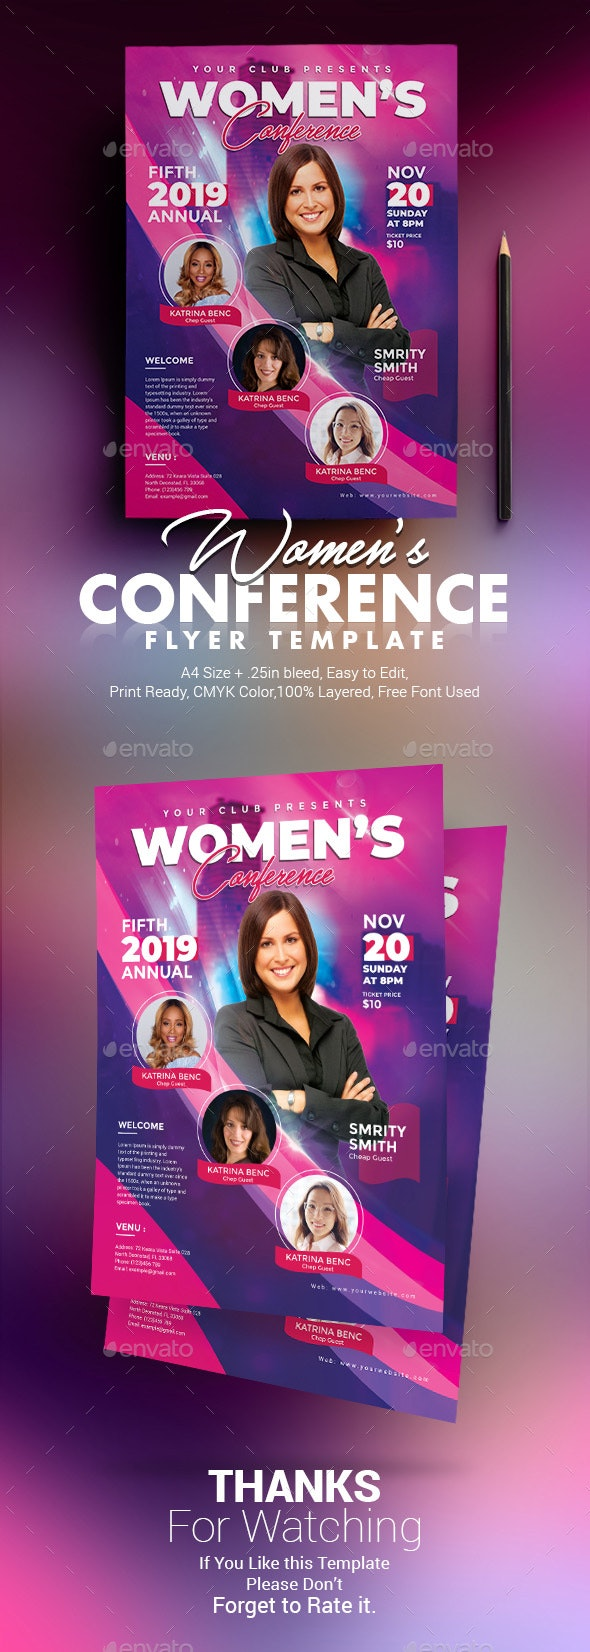 Women Conference Flyer - Church Flyers